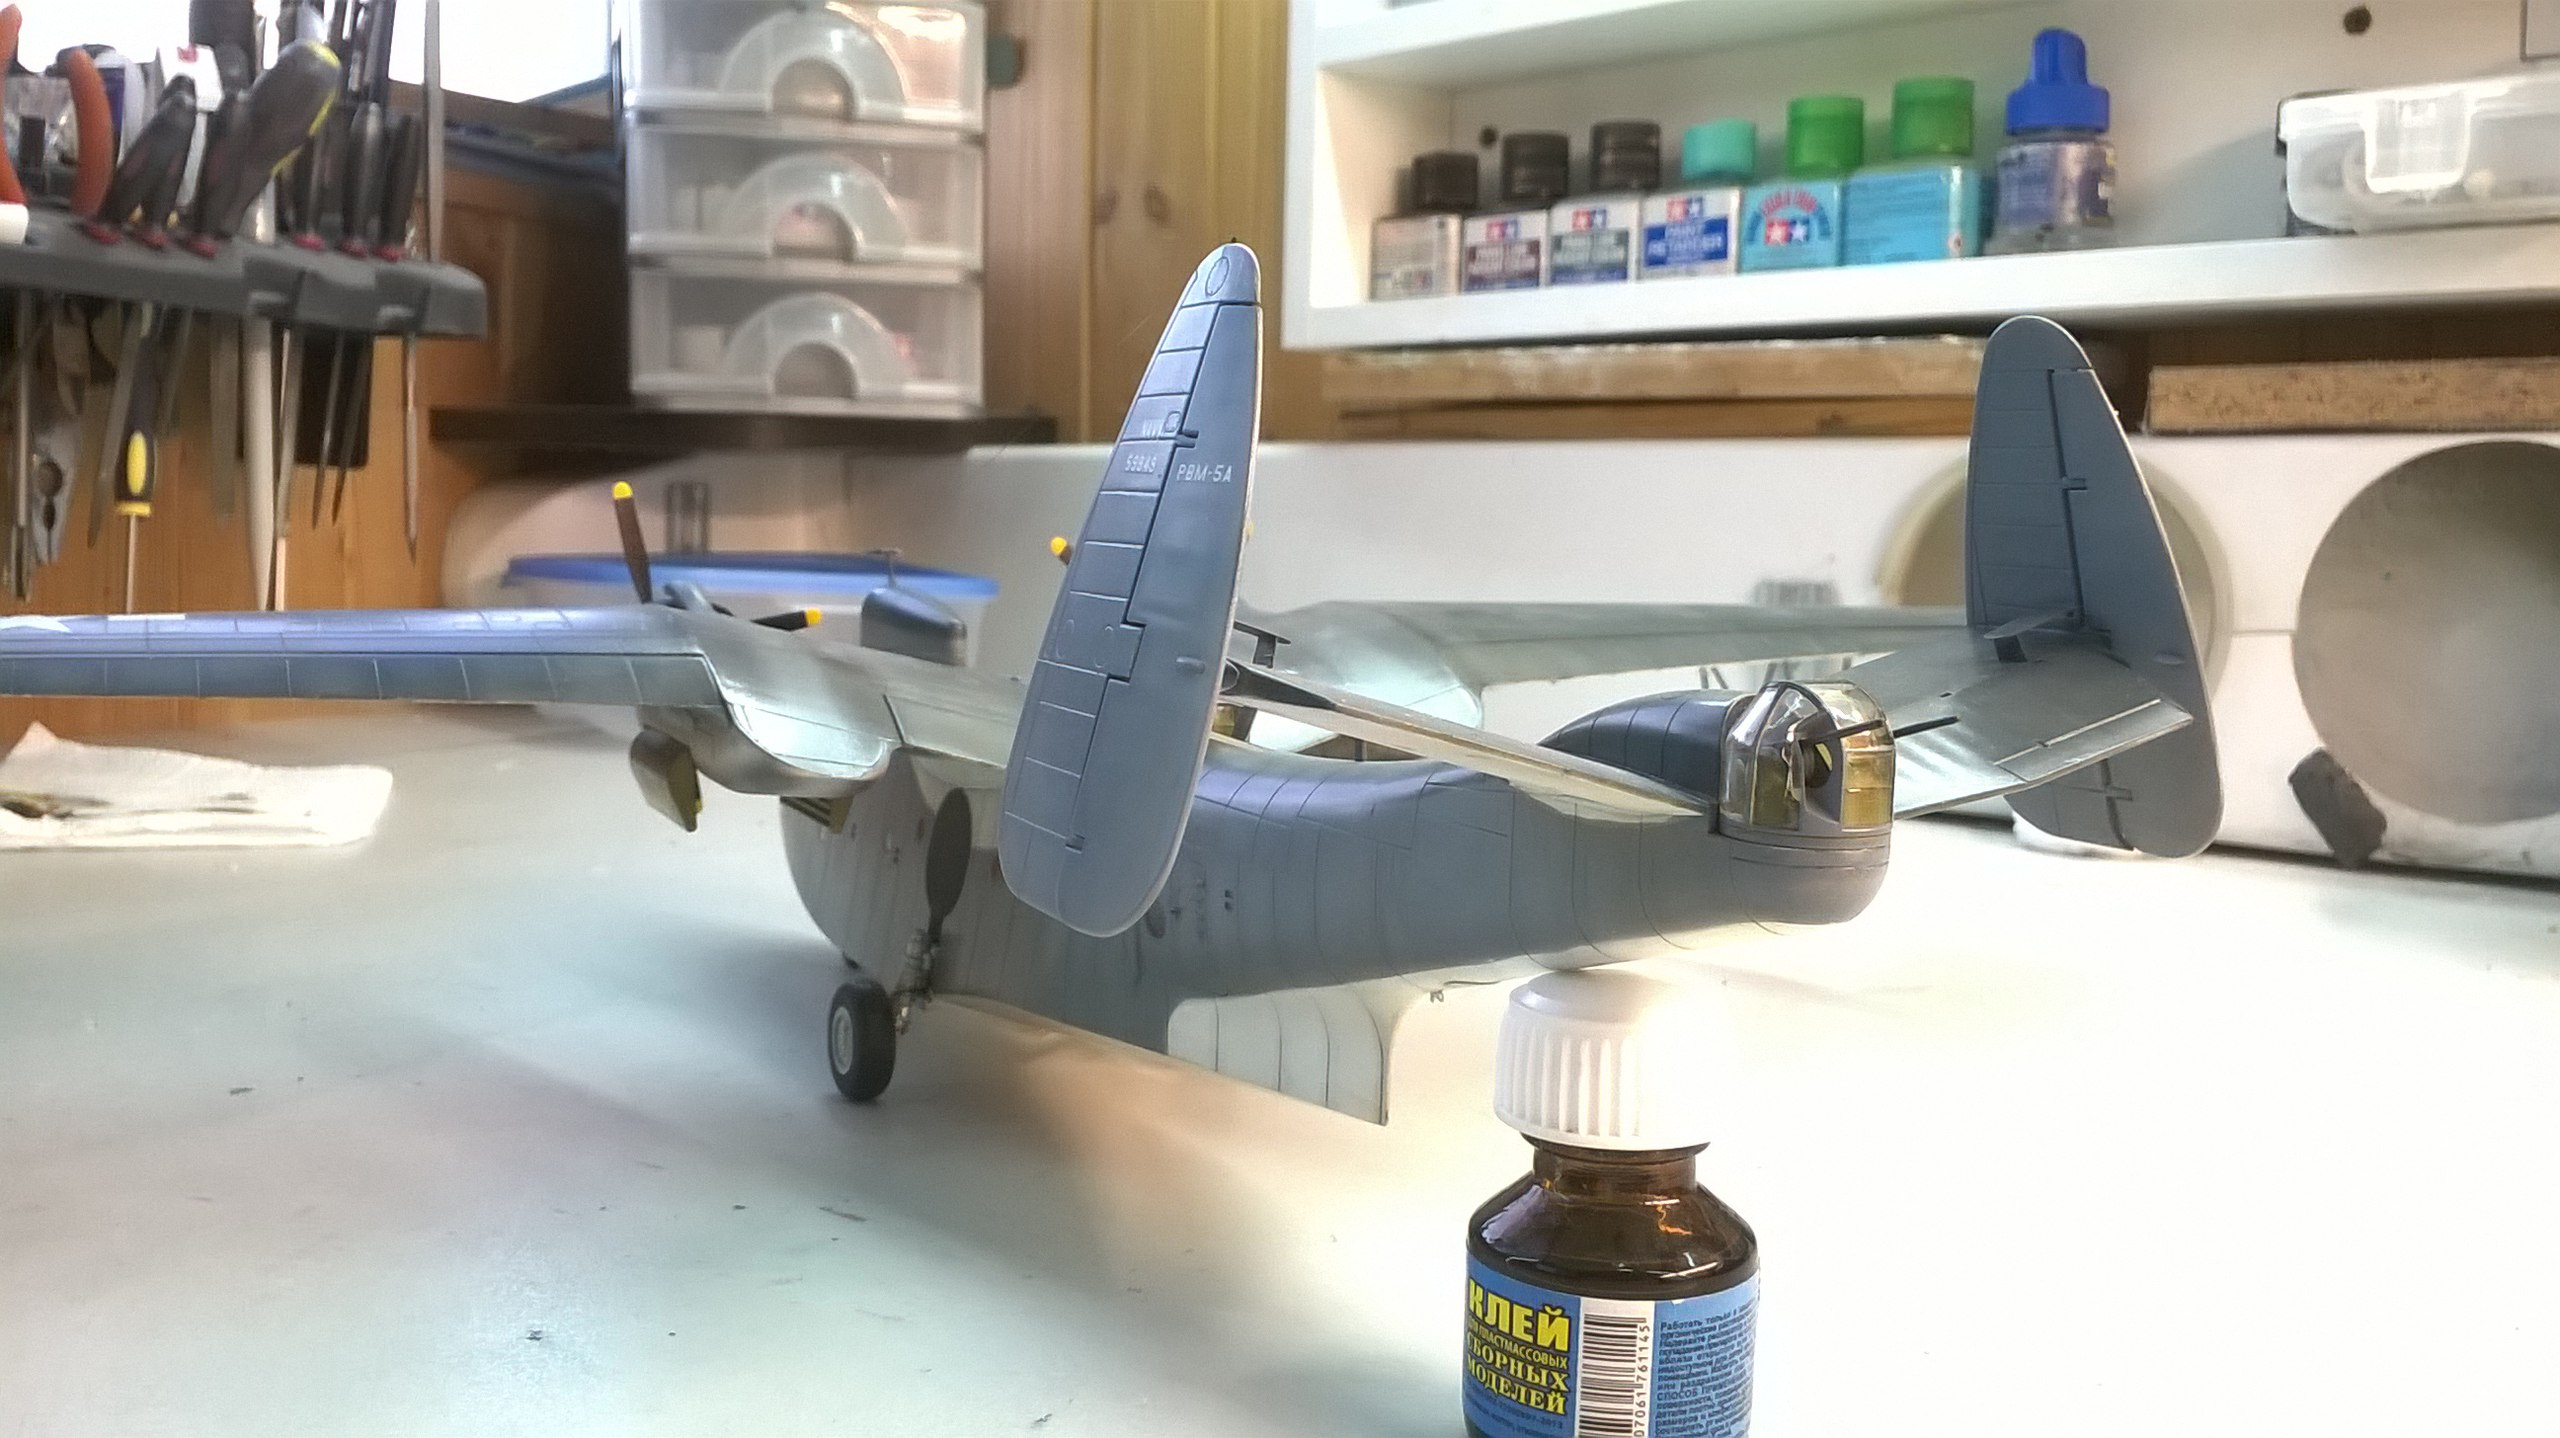 PBM-5 A MARINER 1/72 (MINICRAFT) - Страница 2 Jl5gtLHF0Yk